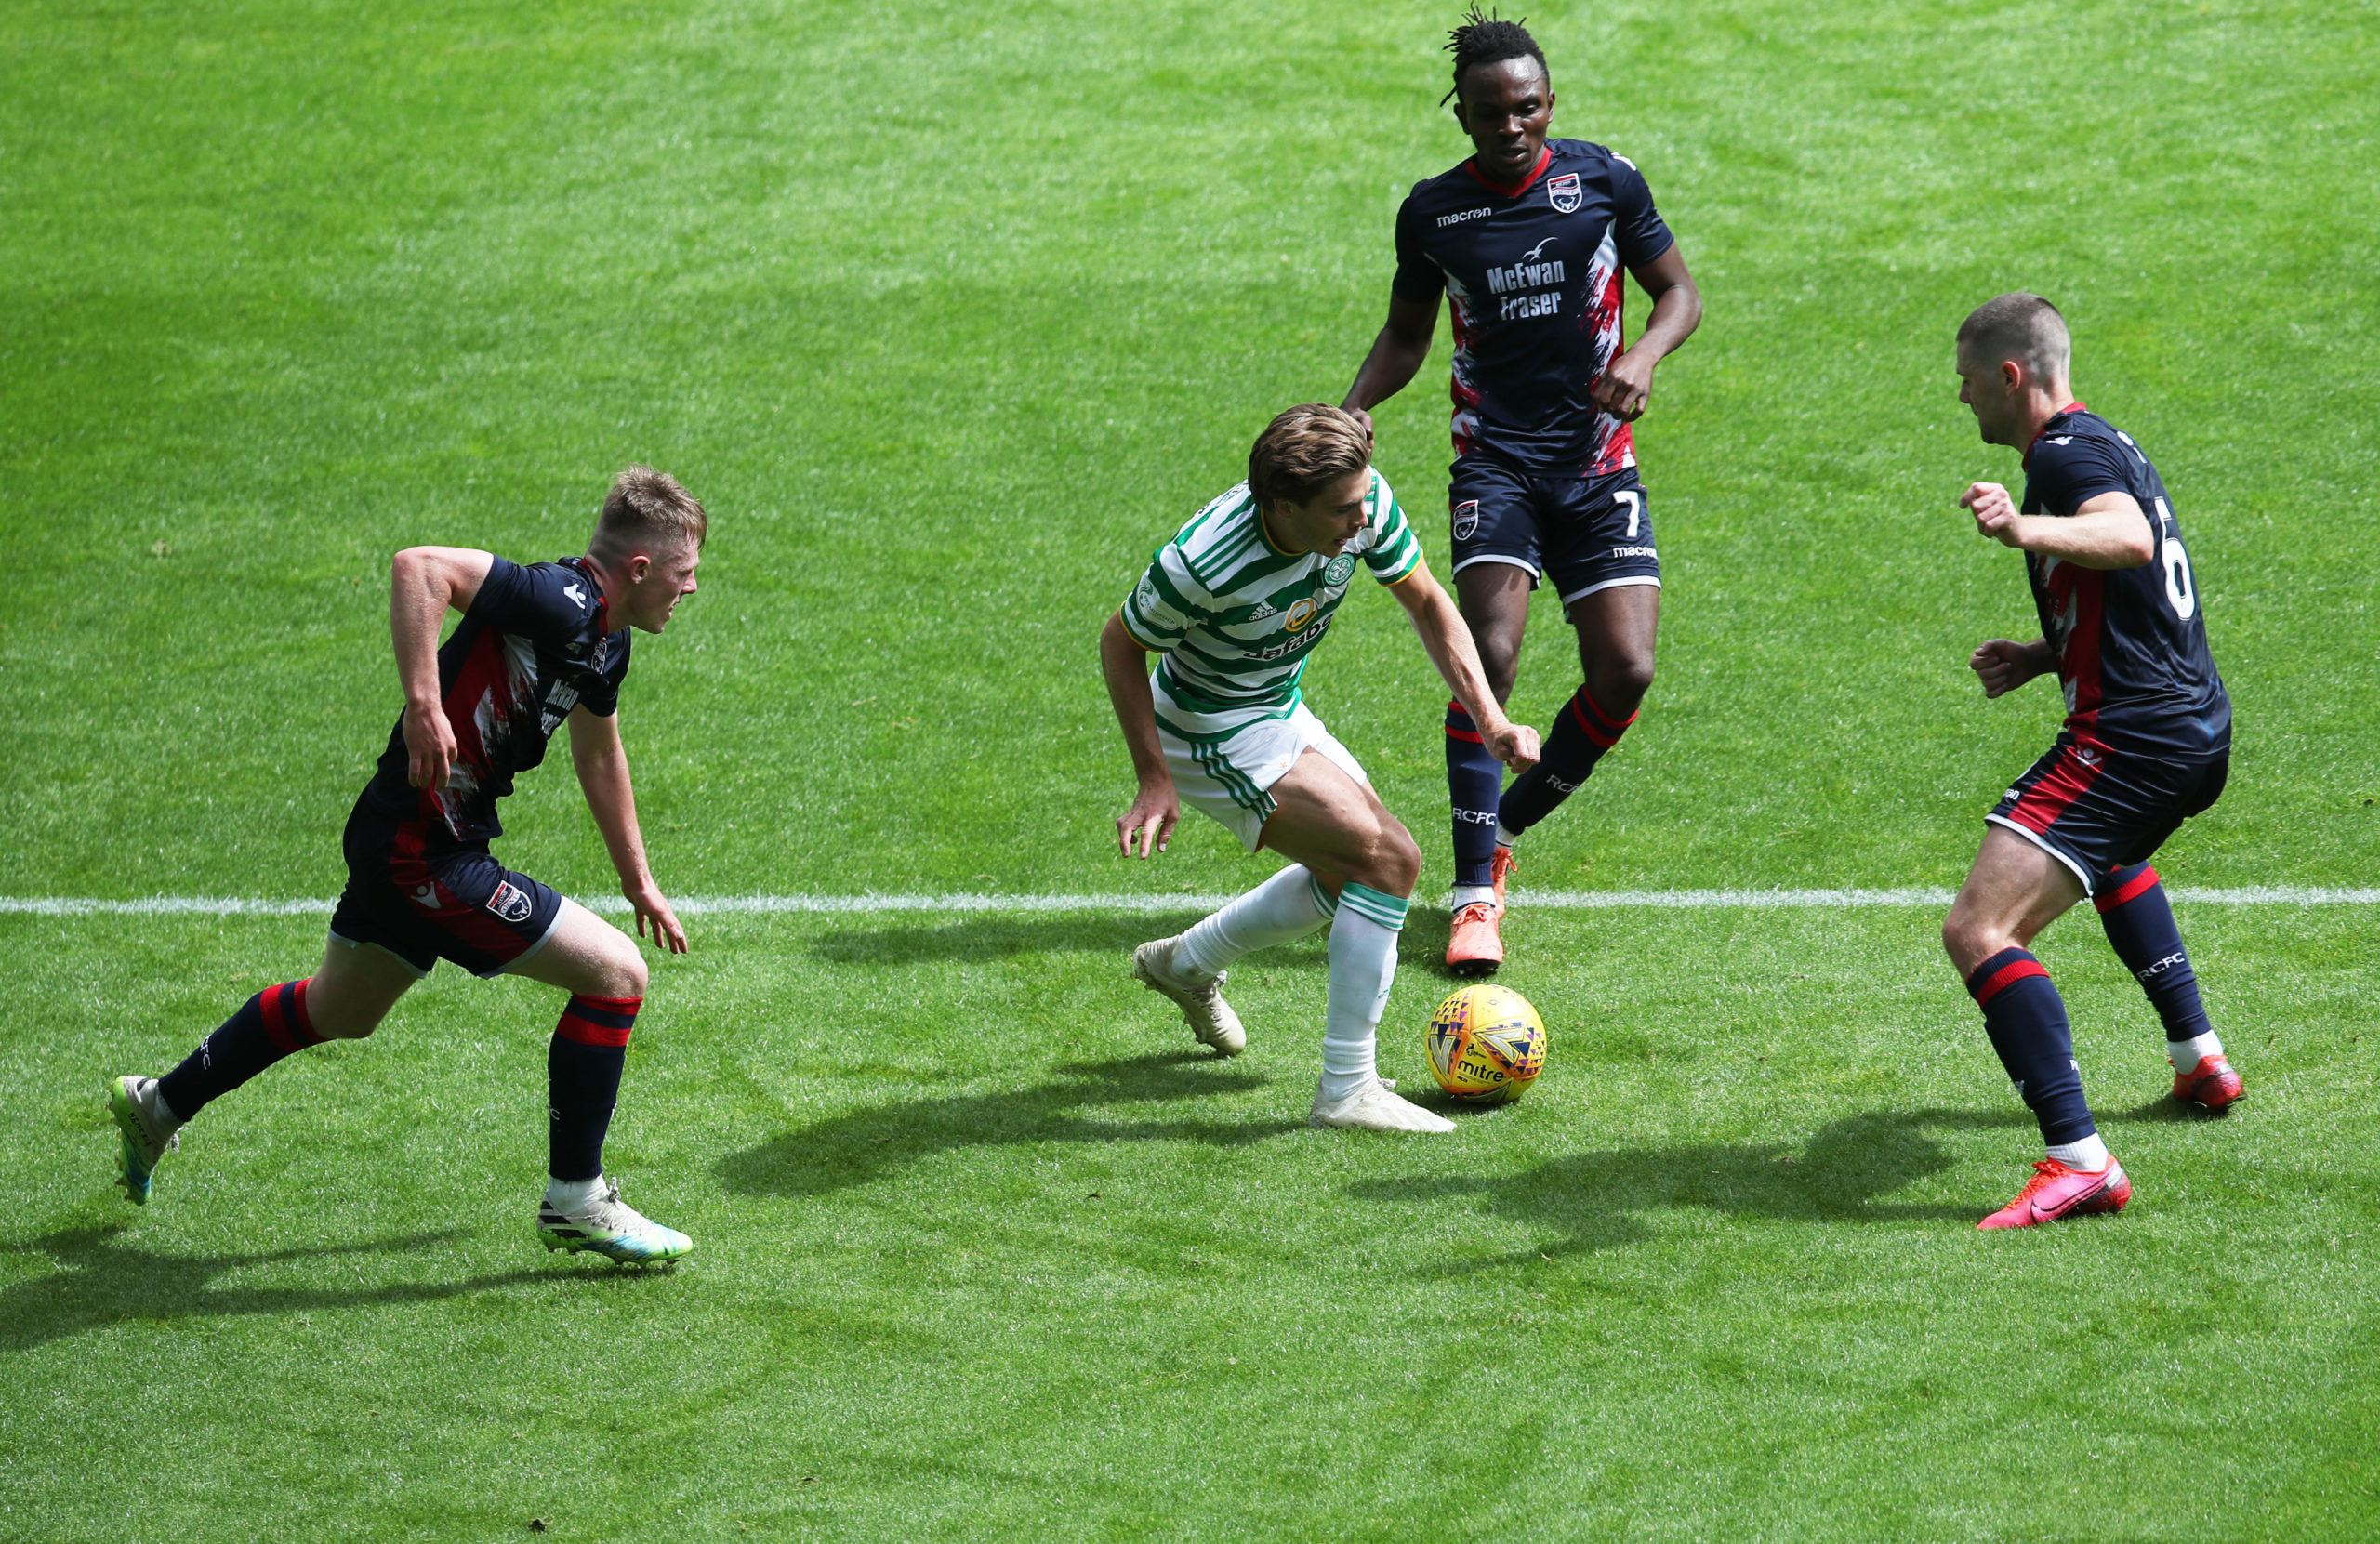 Celtic in action against Ross County